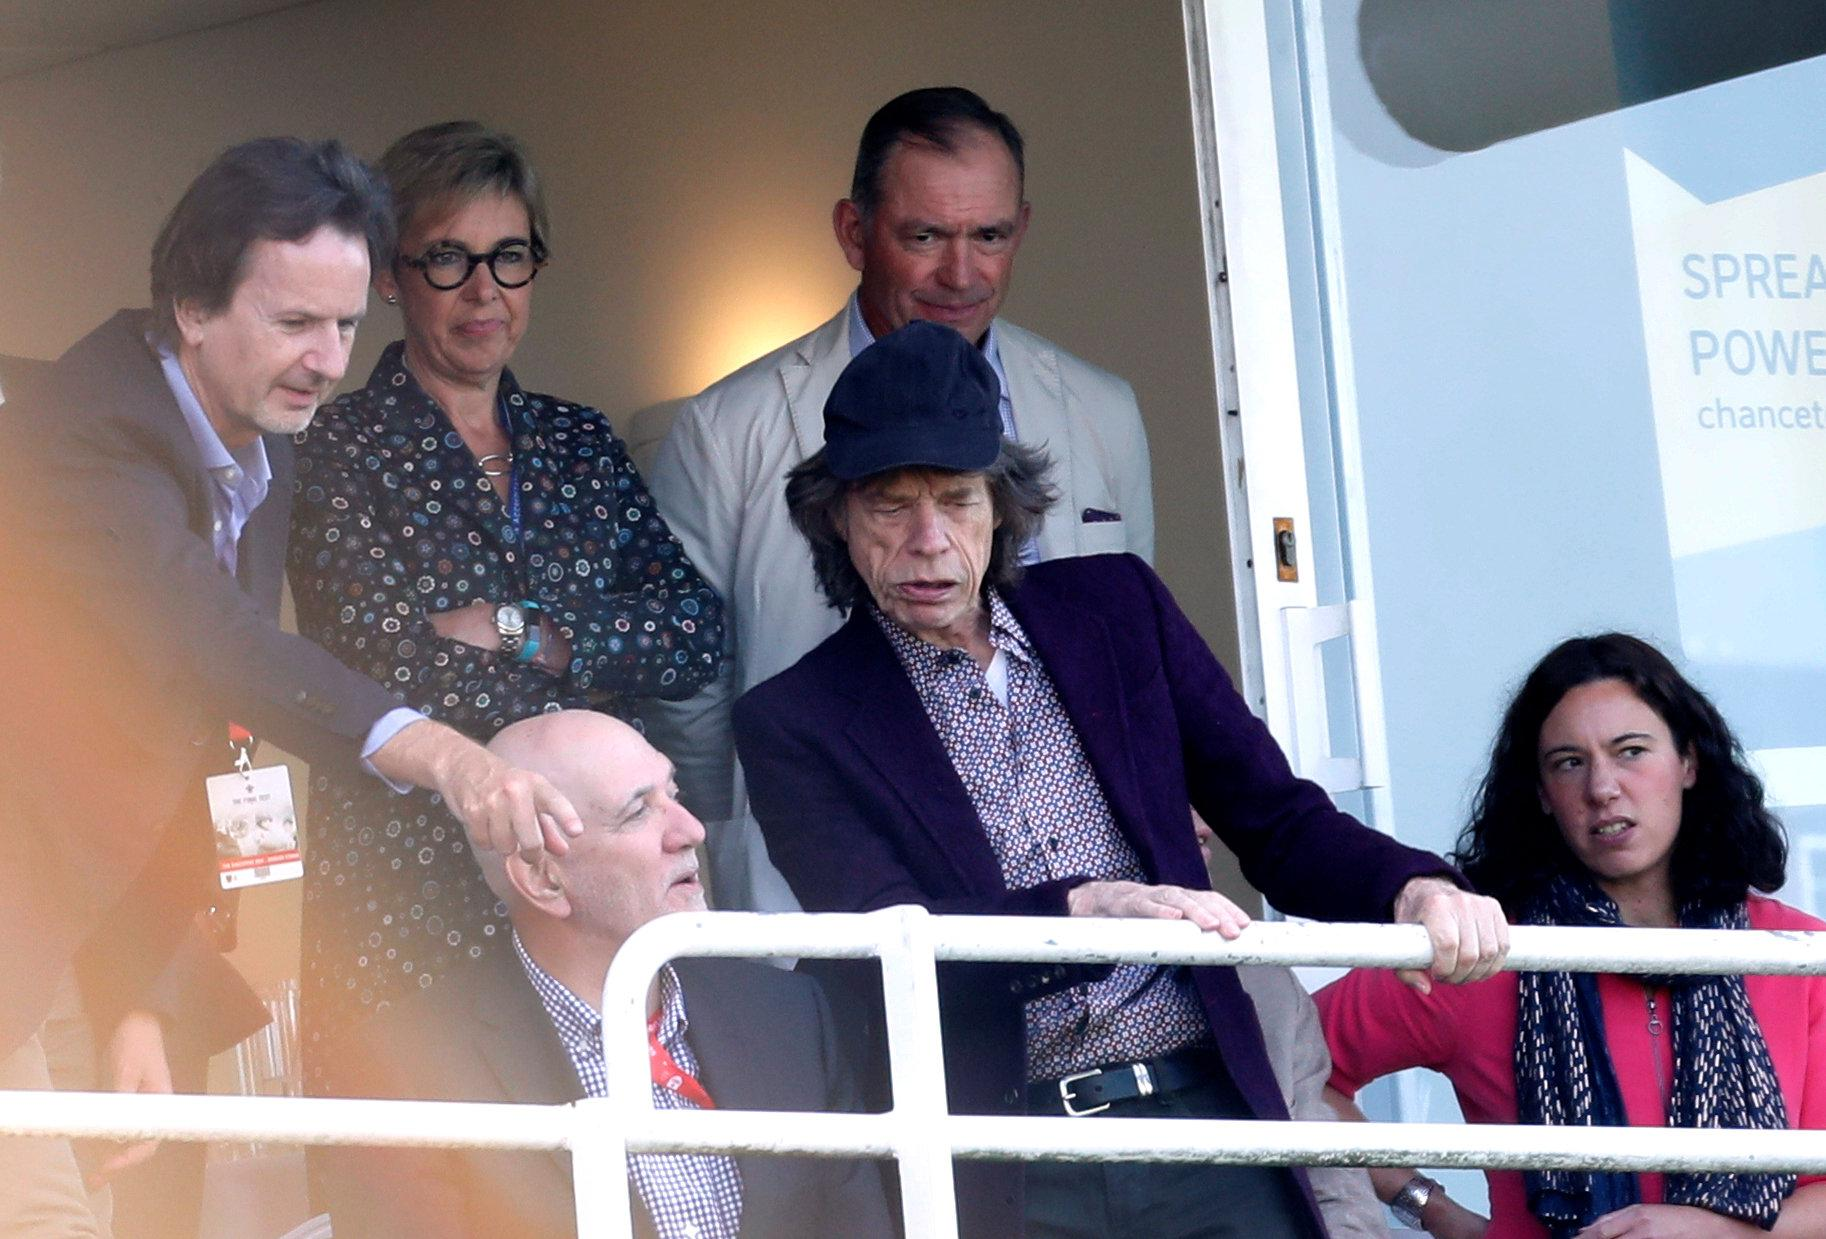 The impressive knock means Mick Jagger will now give over £100,000 to charity